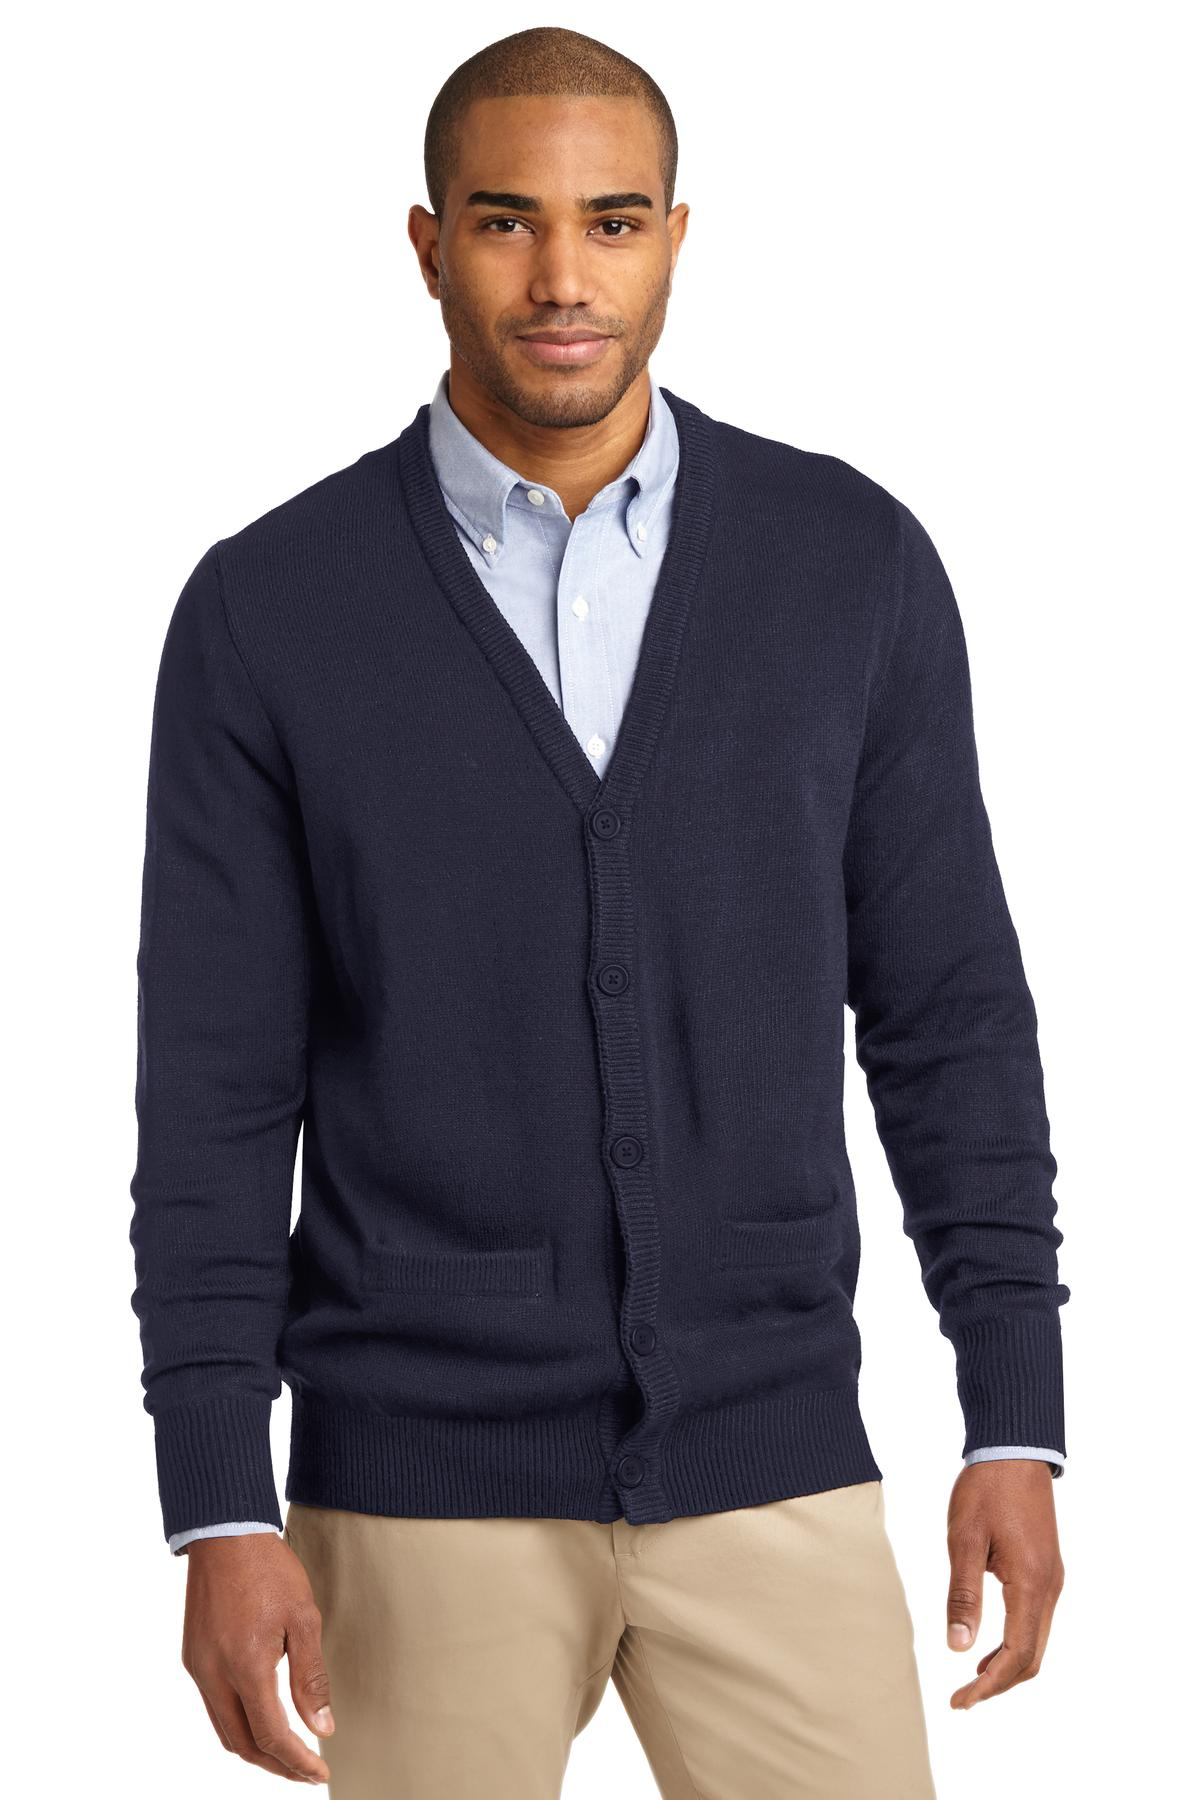 Port Authority Value V-Neck Cardigan Sweater with Pockets. SW302